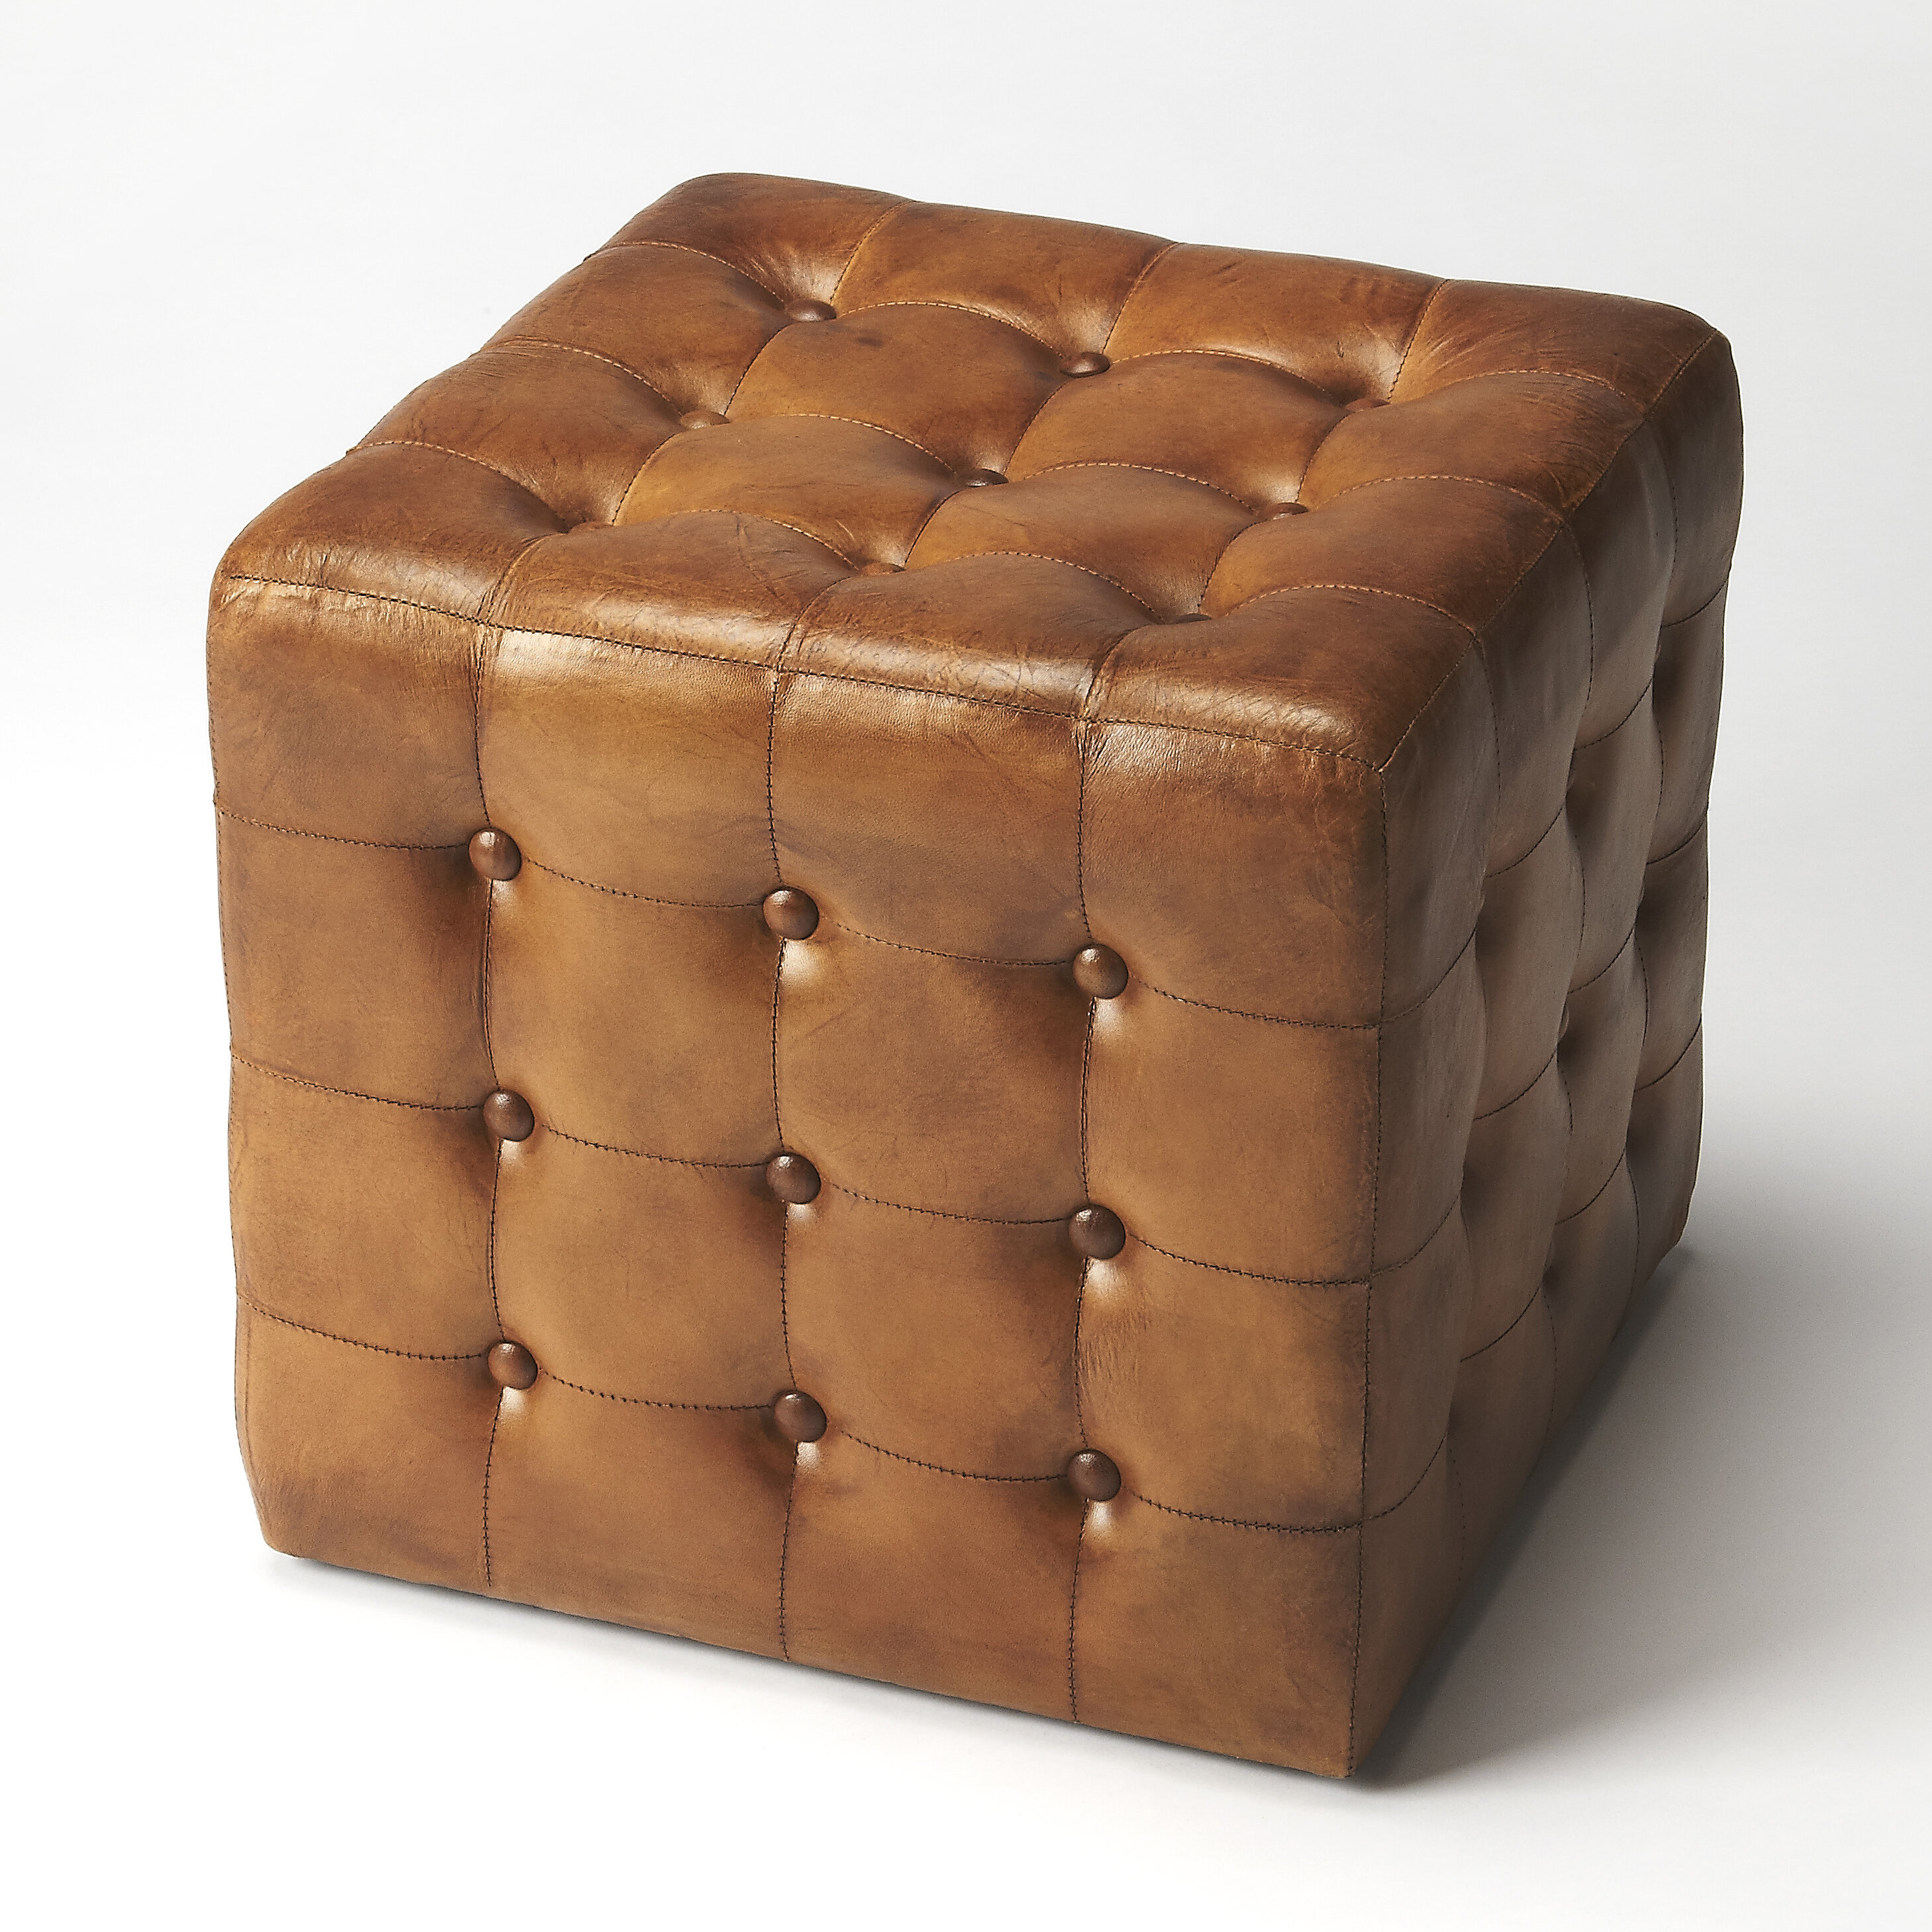 Darby home co archer leather cube ottoman reviews wayfair